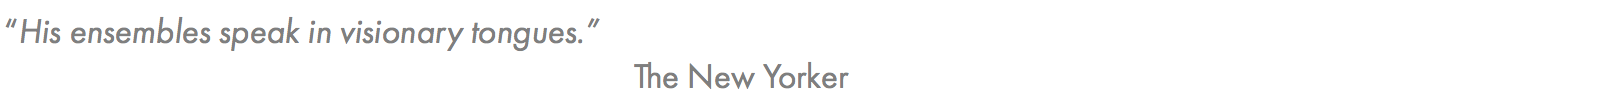 previte-nyorker-quote-grey-website.png